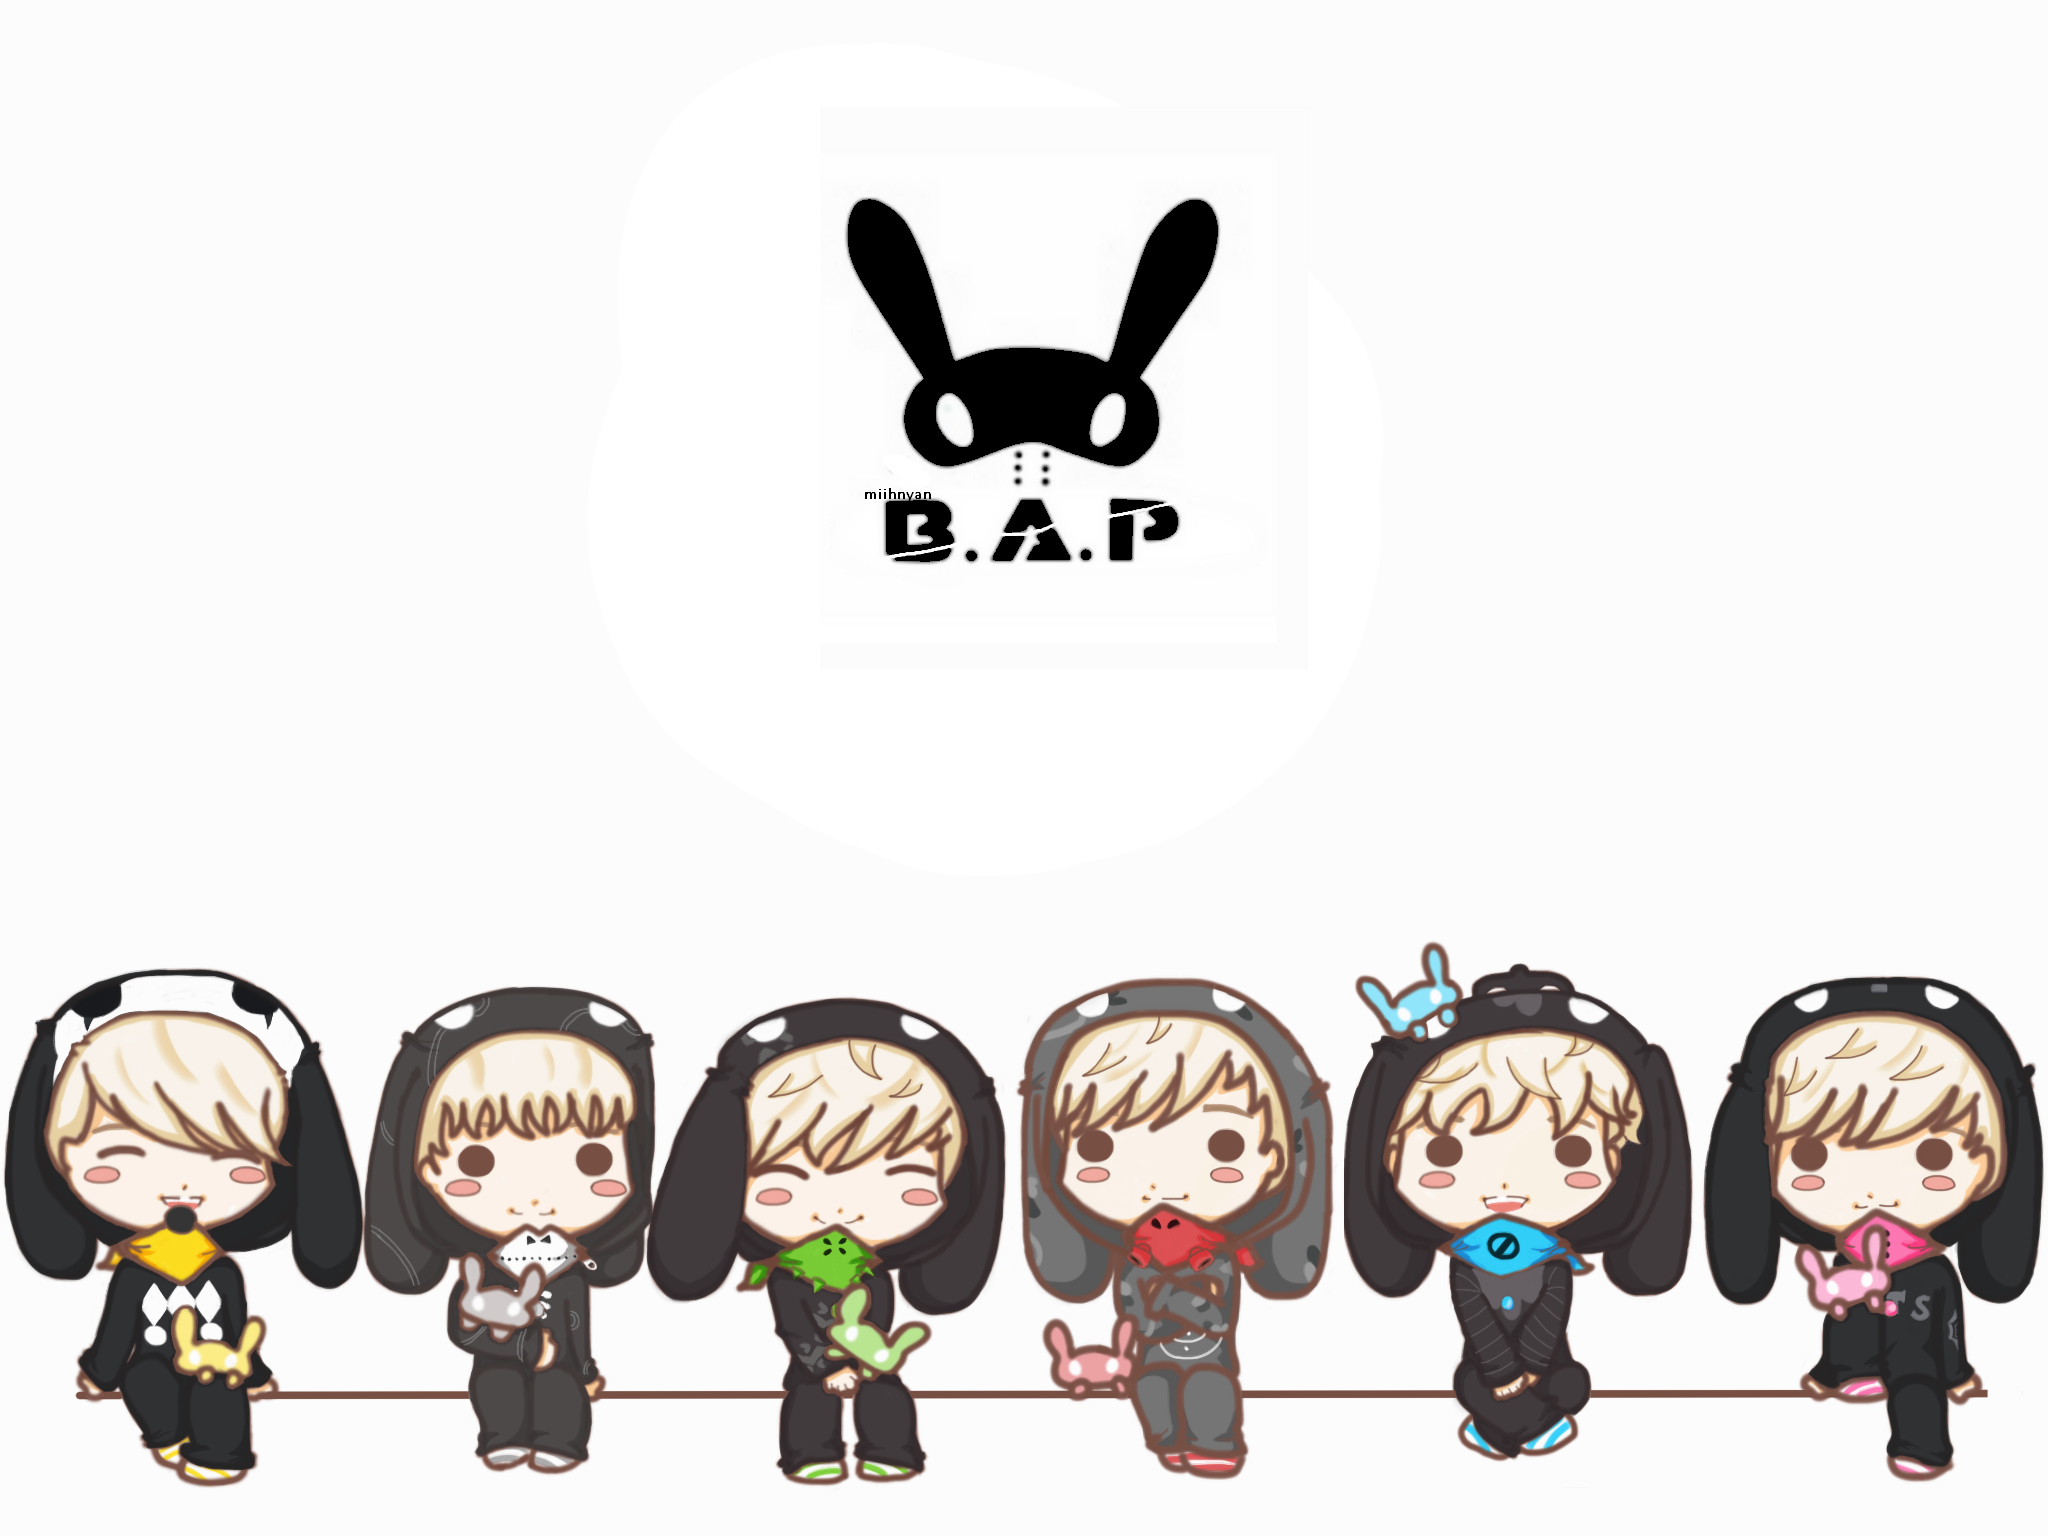 bap matoki wallpaper - photo #20